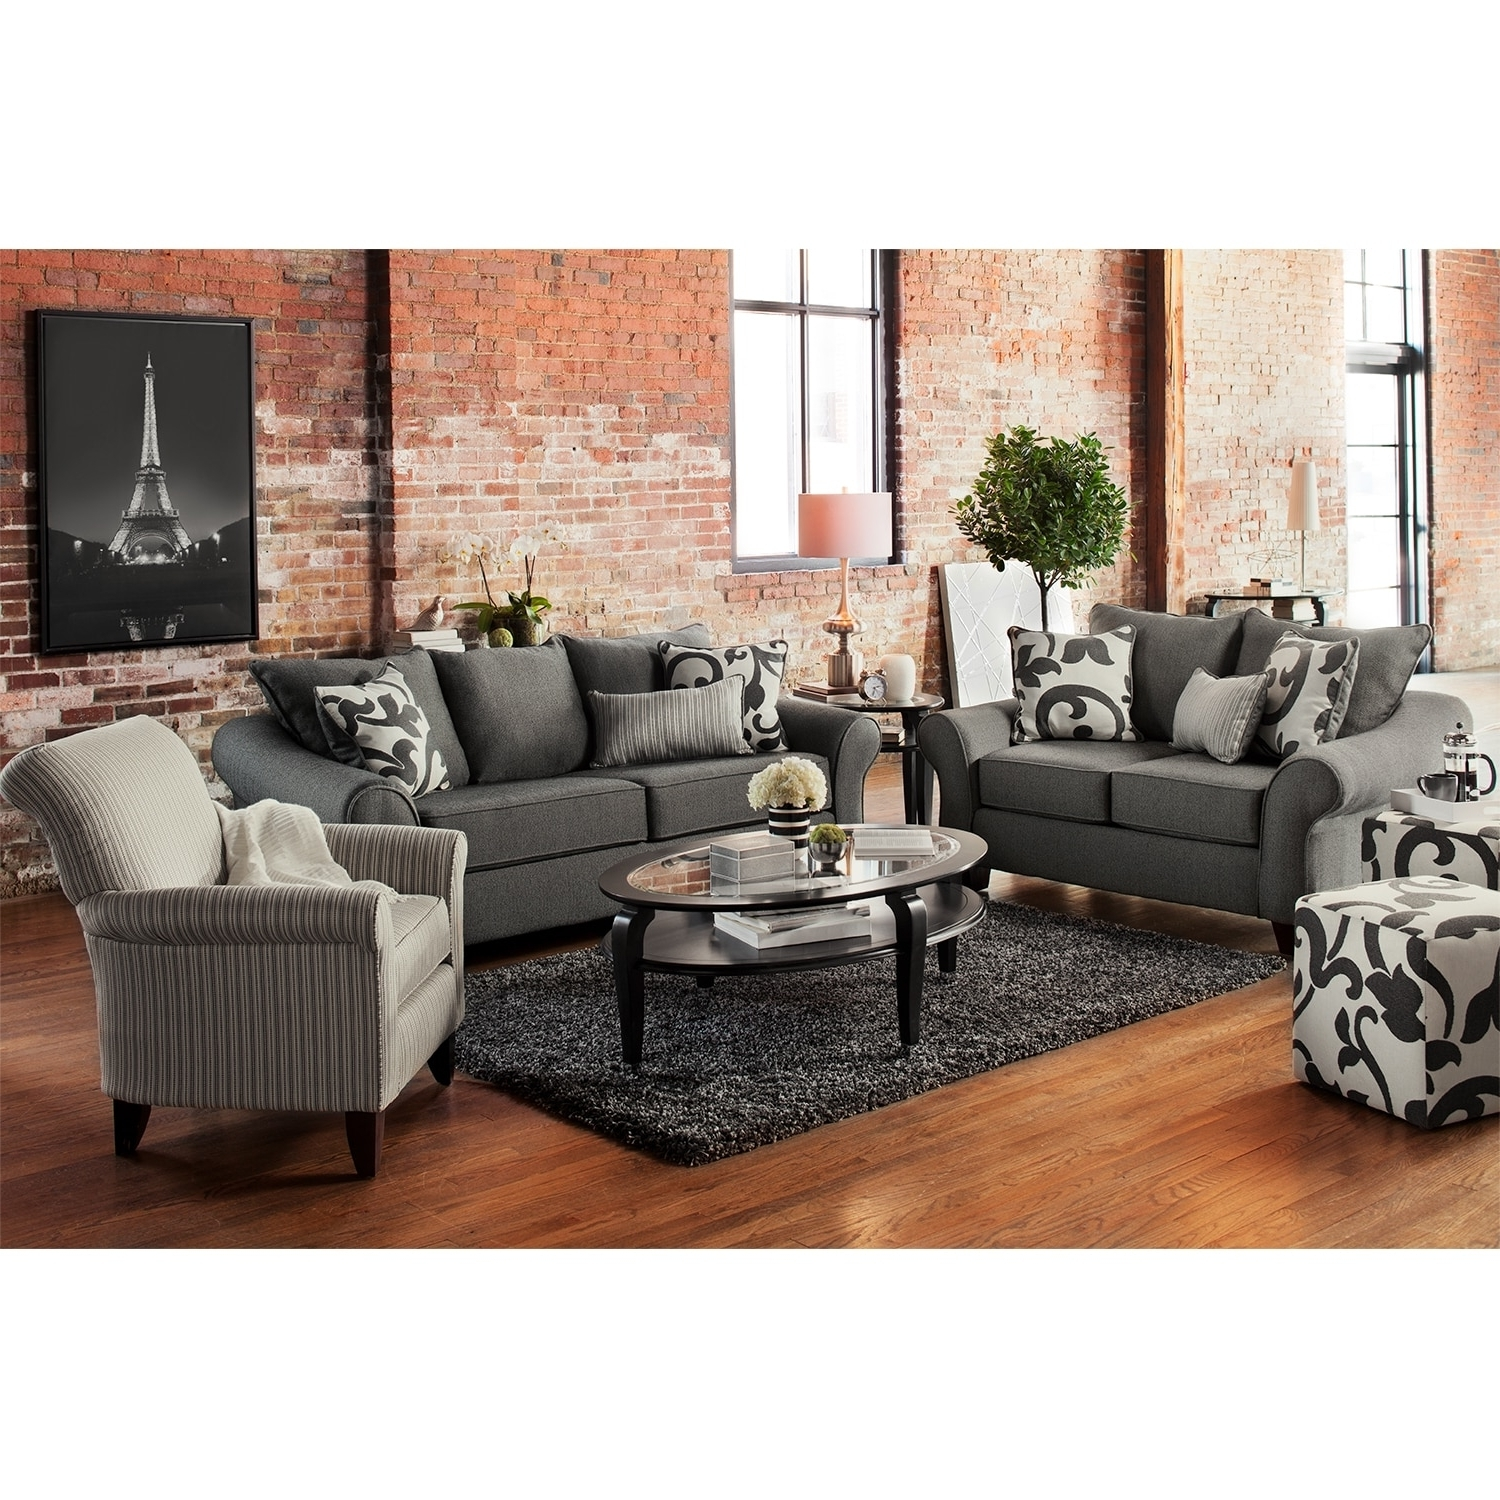 Popular Sofa And Accent Chair Sets With Leather Sofa Loveseat Chair And Ottoman Modern Set Accent (View 13 of 20)